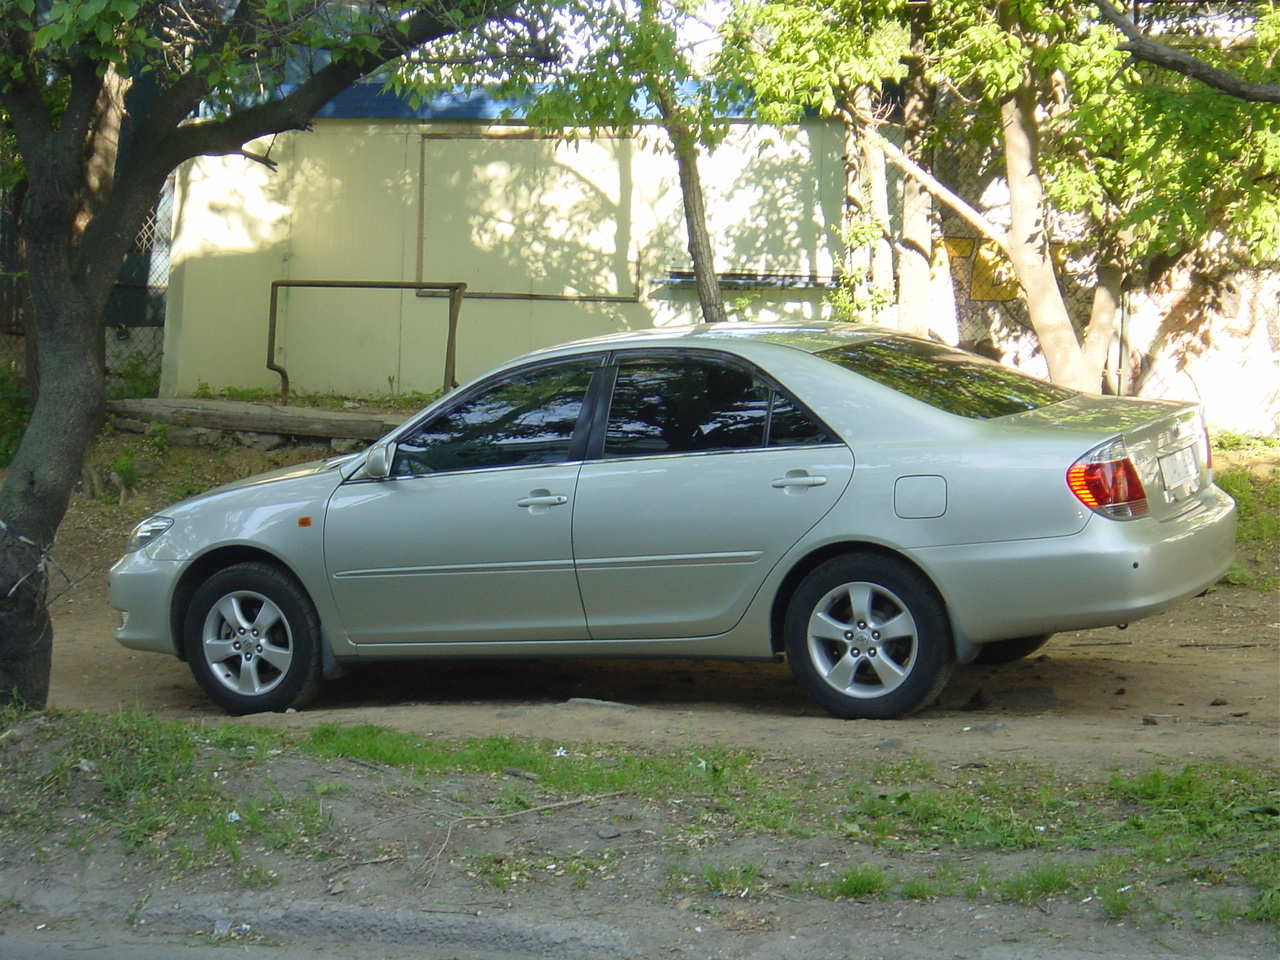 2005 toyota camry photos 2 4 gasoline automatic for sale. Black Bedroom Furniture Sets. Home Design Ideas